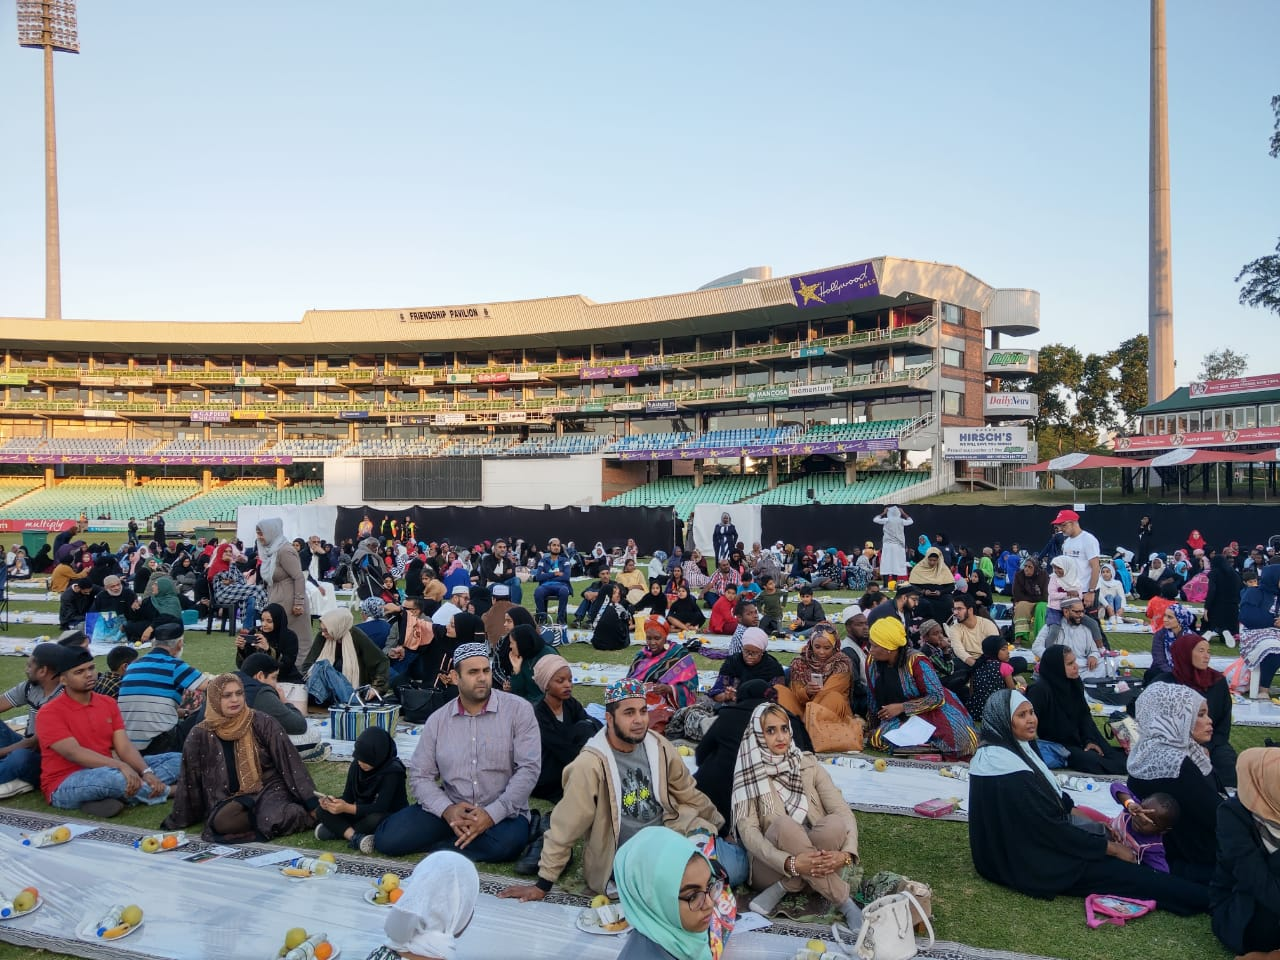 'Mass Durban Iftar' was a huge success despite some criticisms